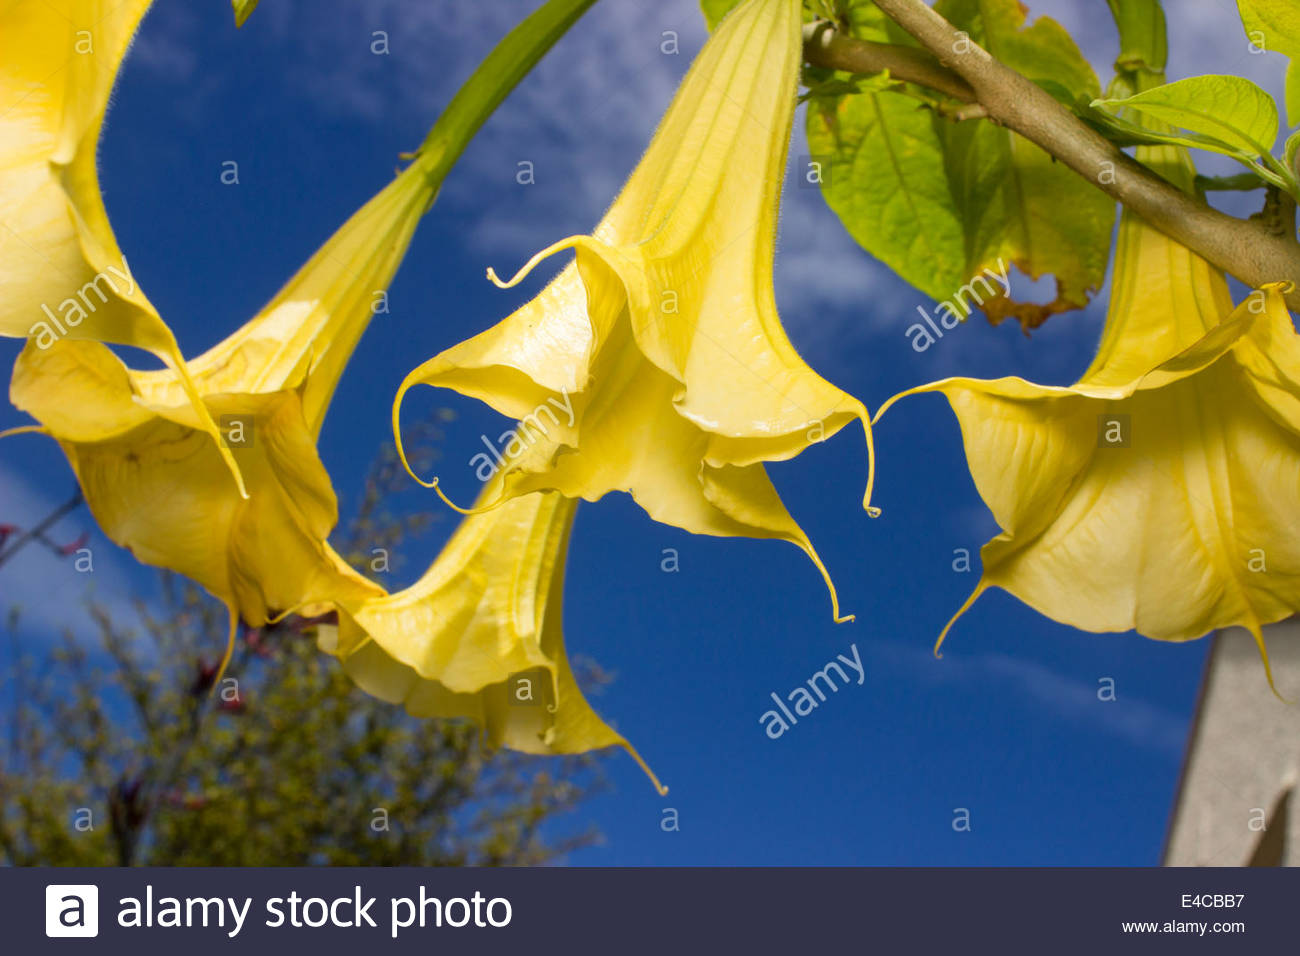 Looking Up Into The Flowers Of The Angel's Trumpet, Brugmansia.